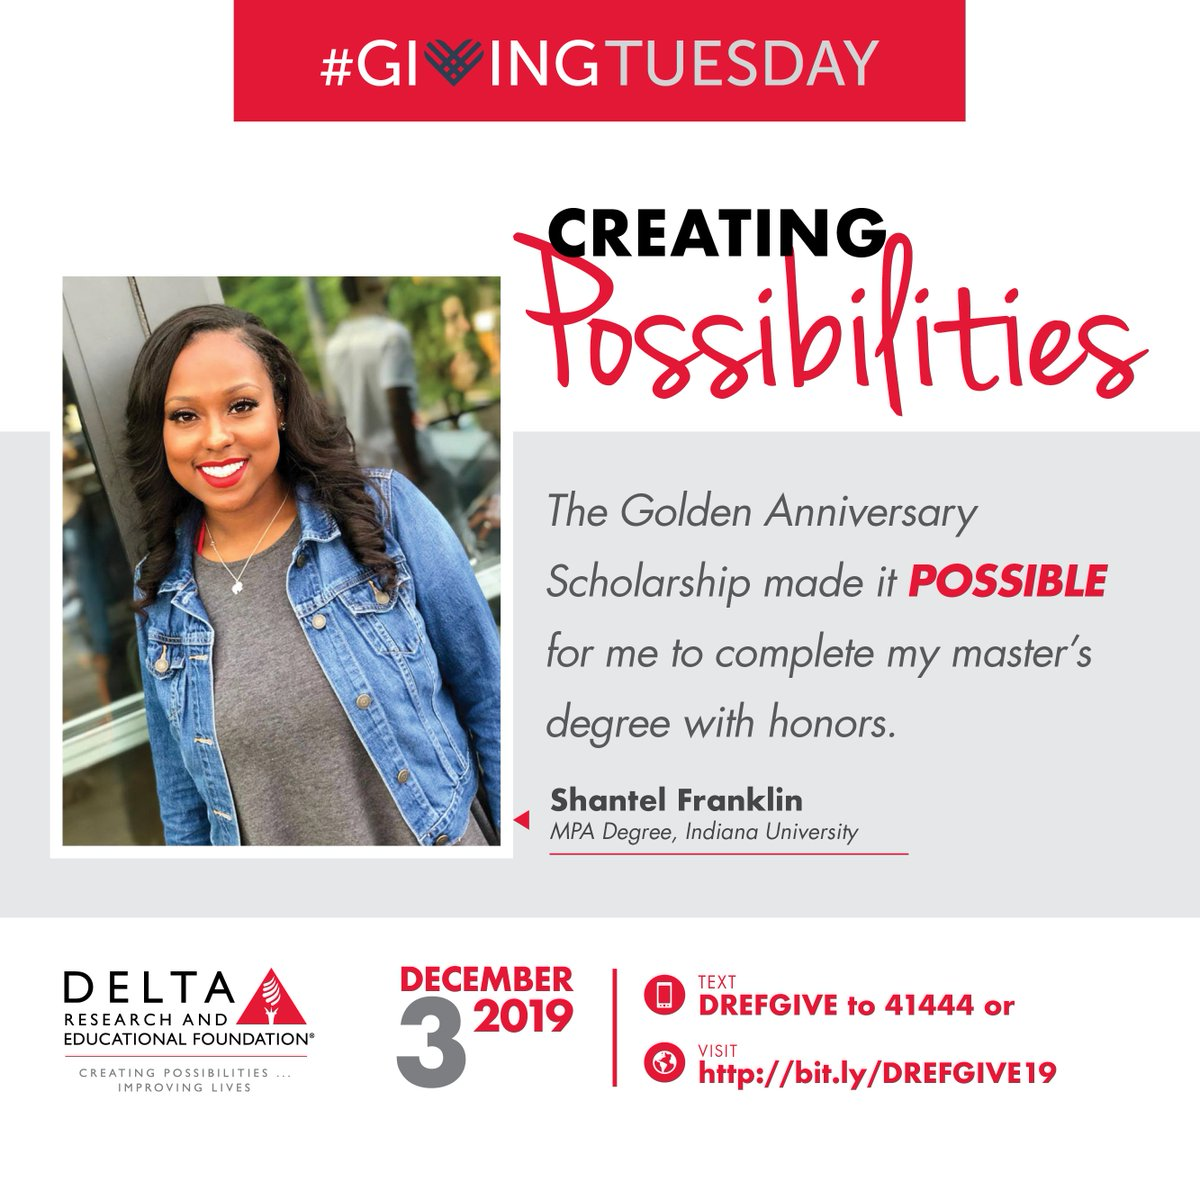 DREF creates  #possibilities for students! With your  #GivingTuesday  donation, will we be able to continue awarding thousands of dollars in scholarship funds to students. Give on Dec. 3.